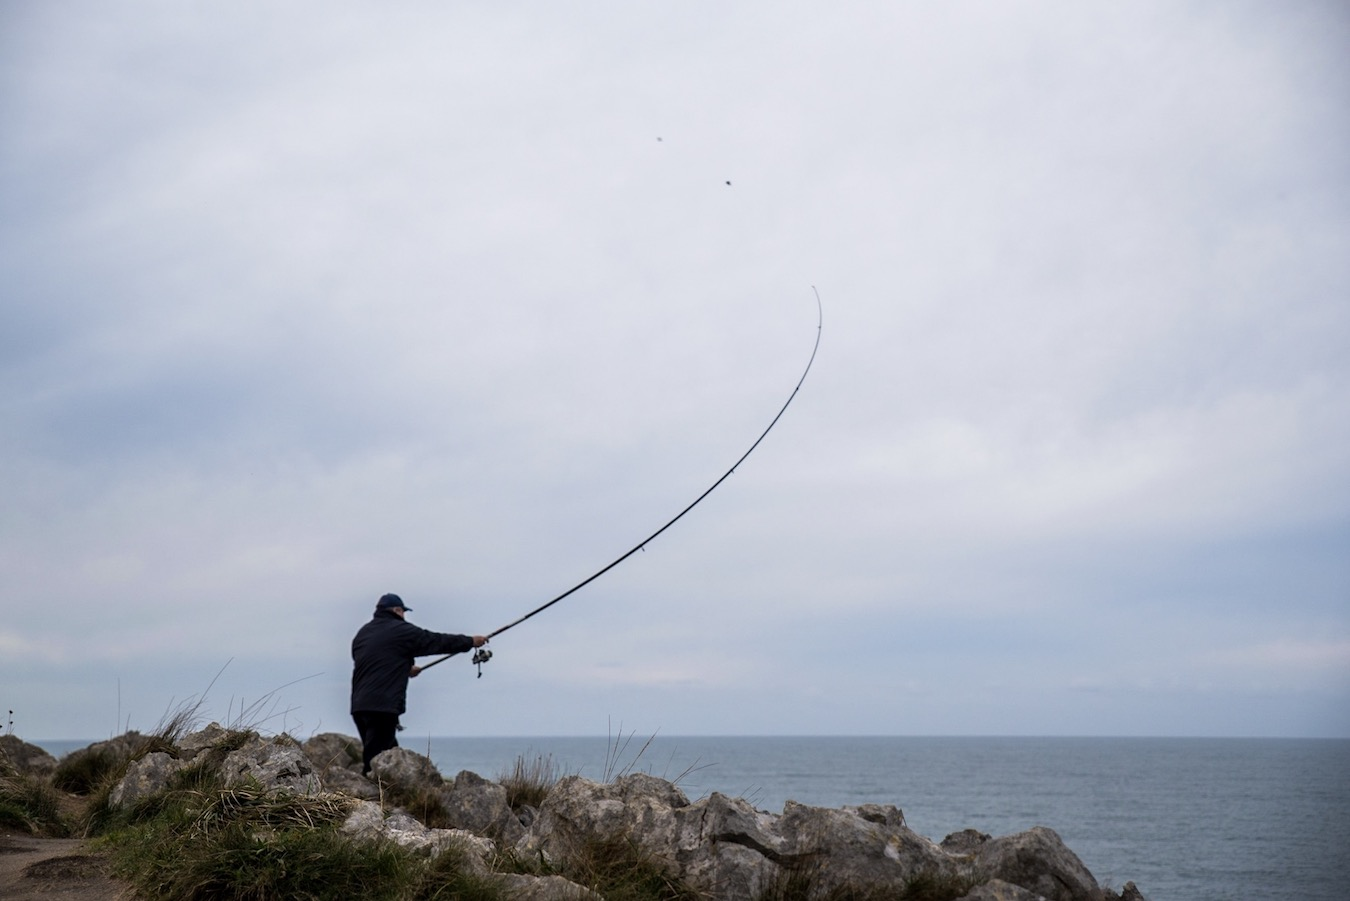 Fishing in Asturias, Northern Spain